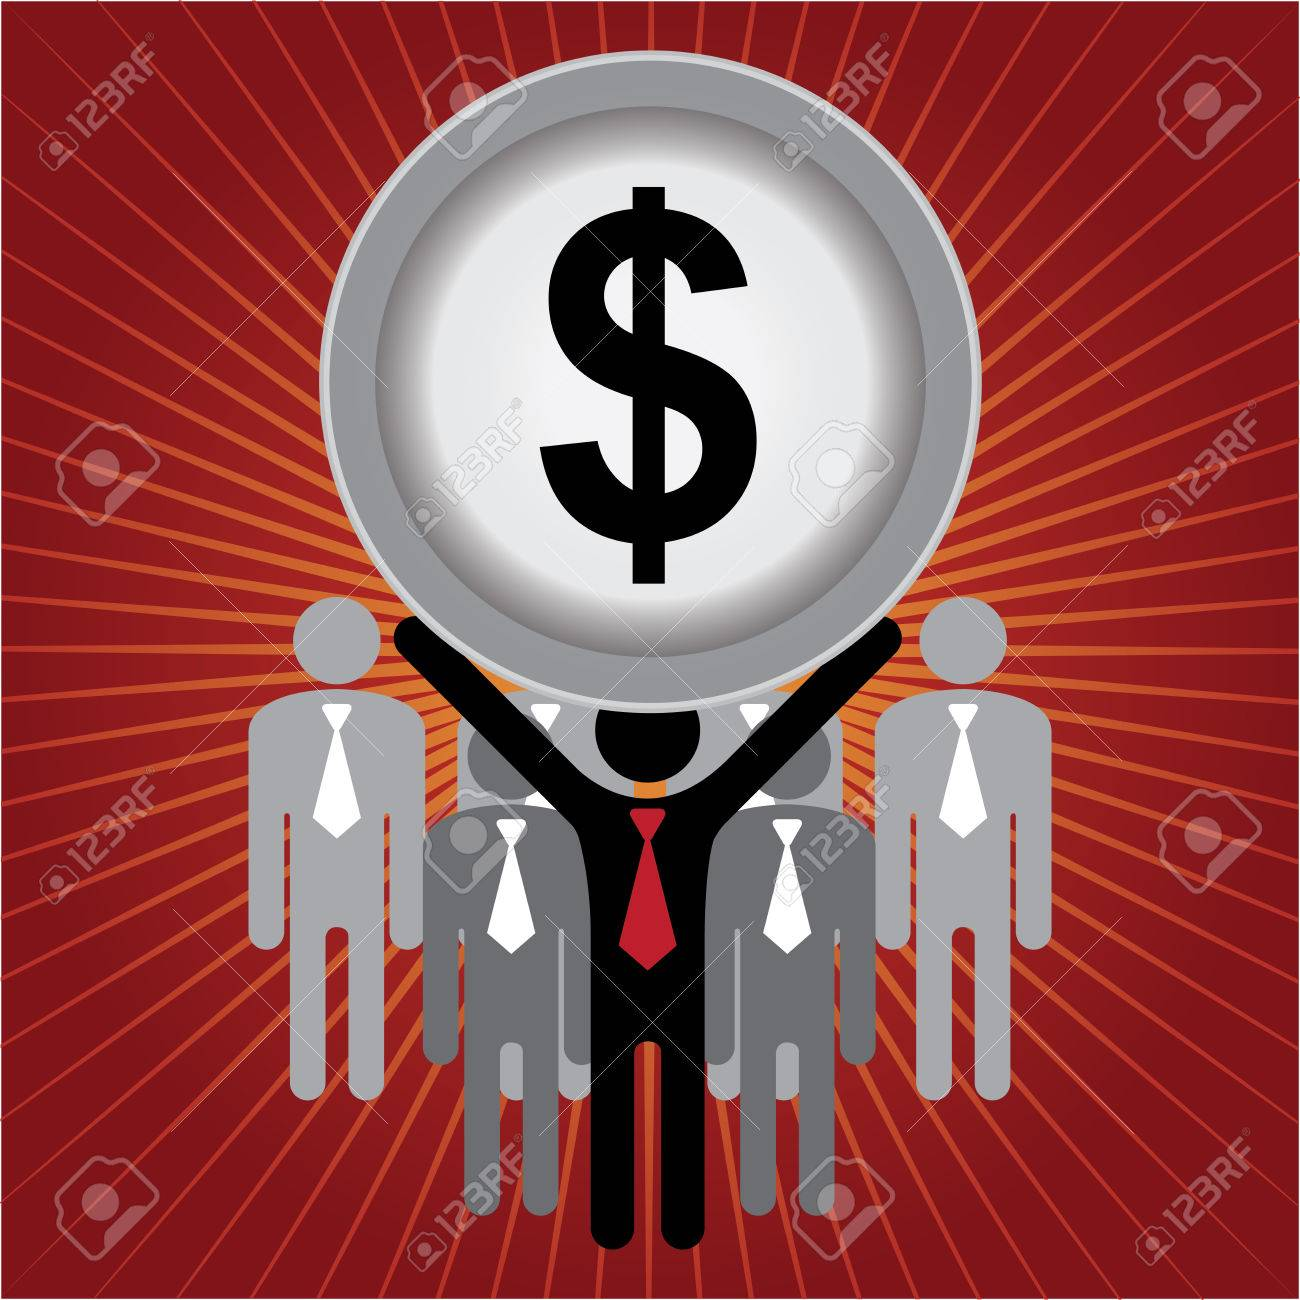 financial operation mlm money working job career or job financial operation mlm money working job career or job opportunity concept present by